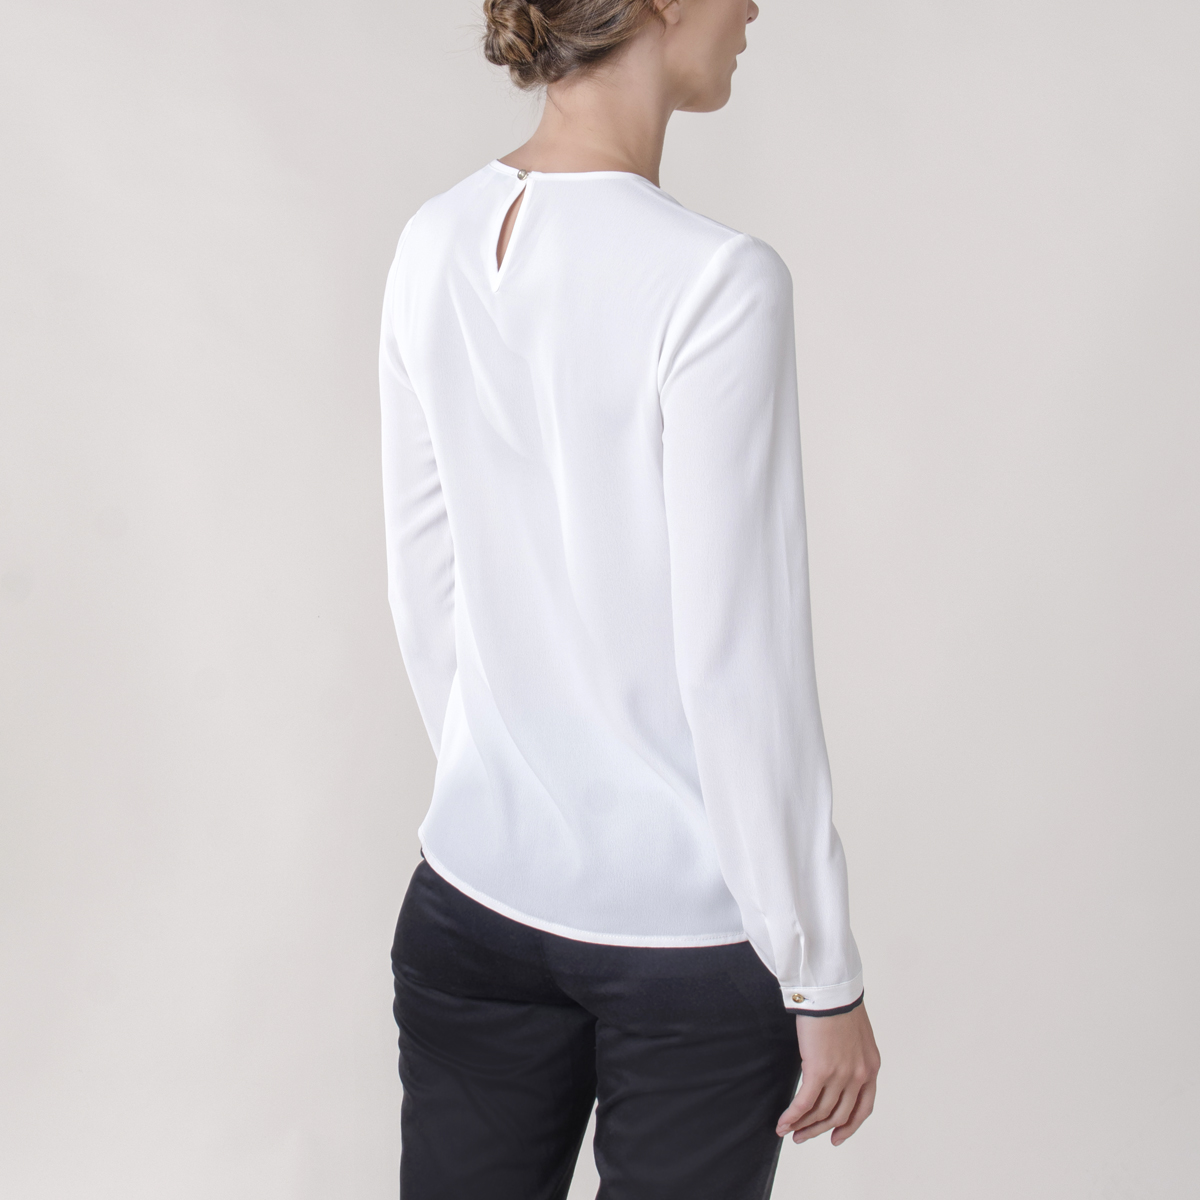 Blusa Manga Larga con Piping